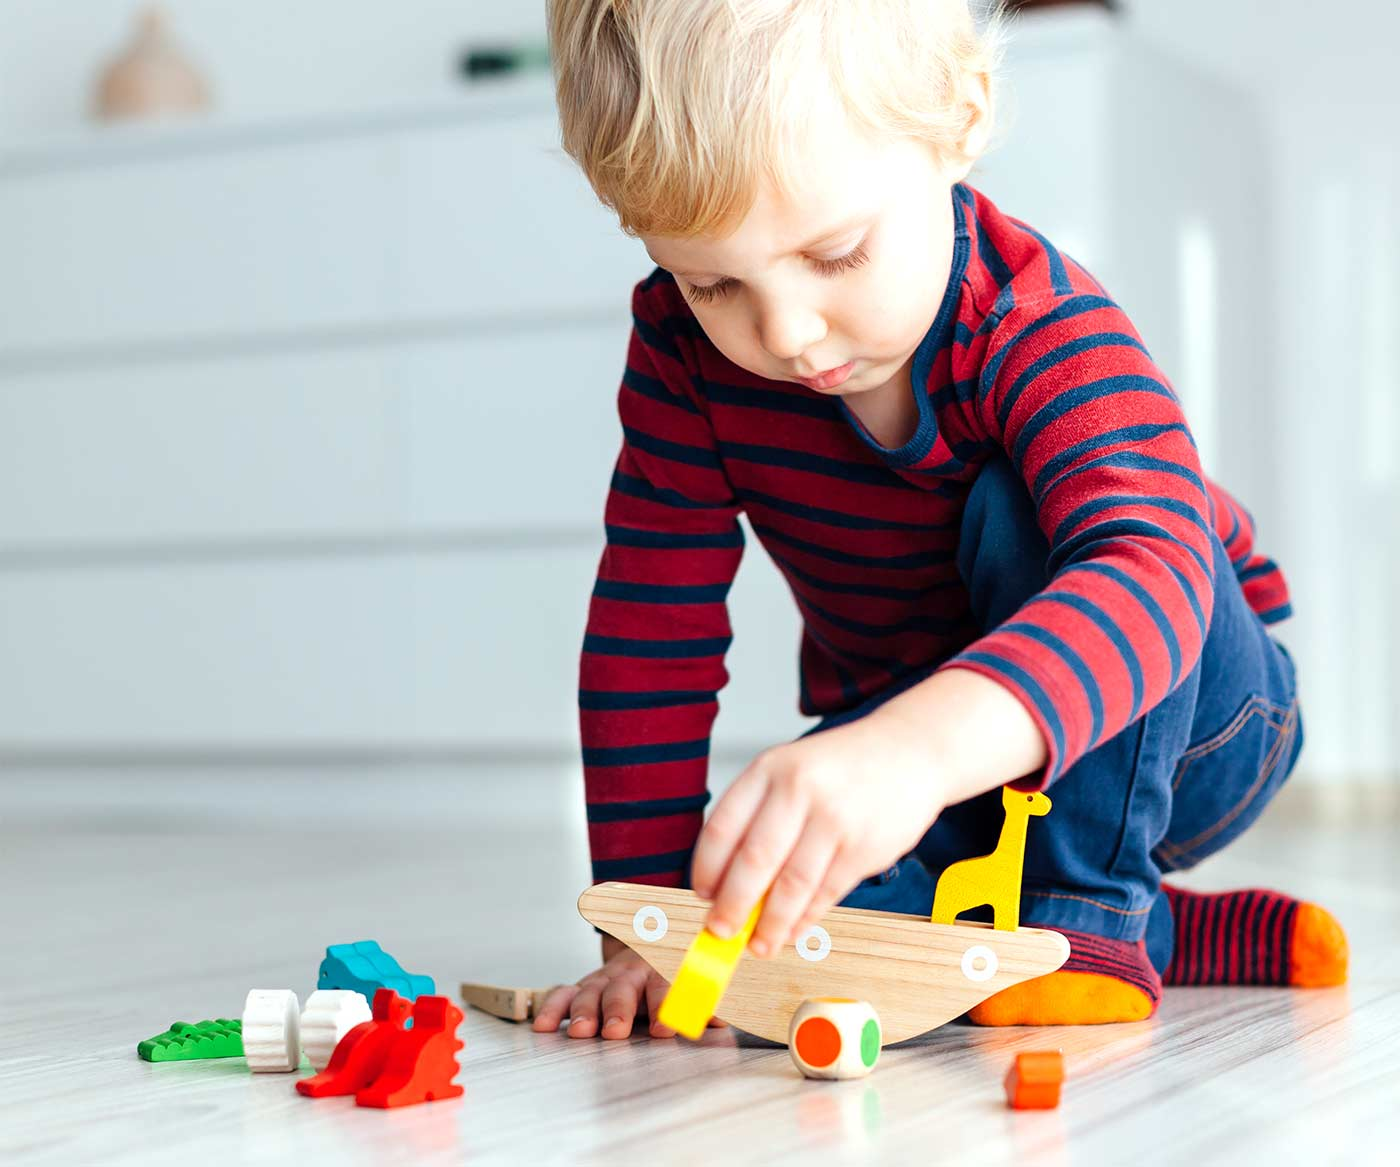 Little boy playing with toys: why you should rotate toys